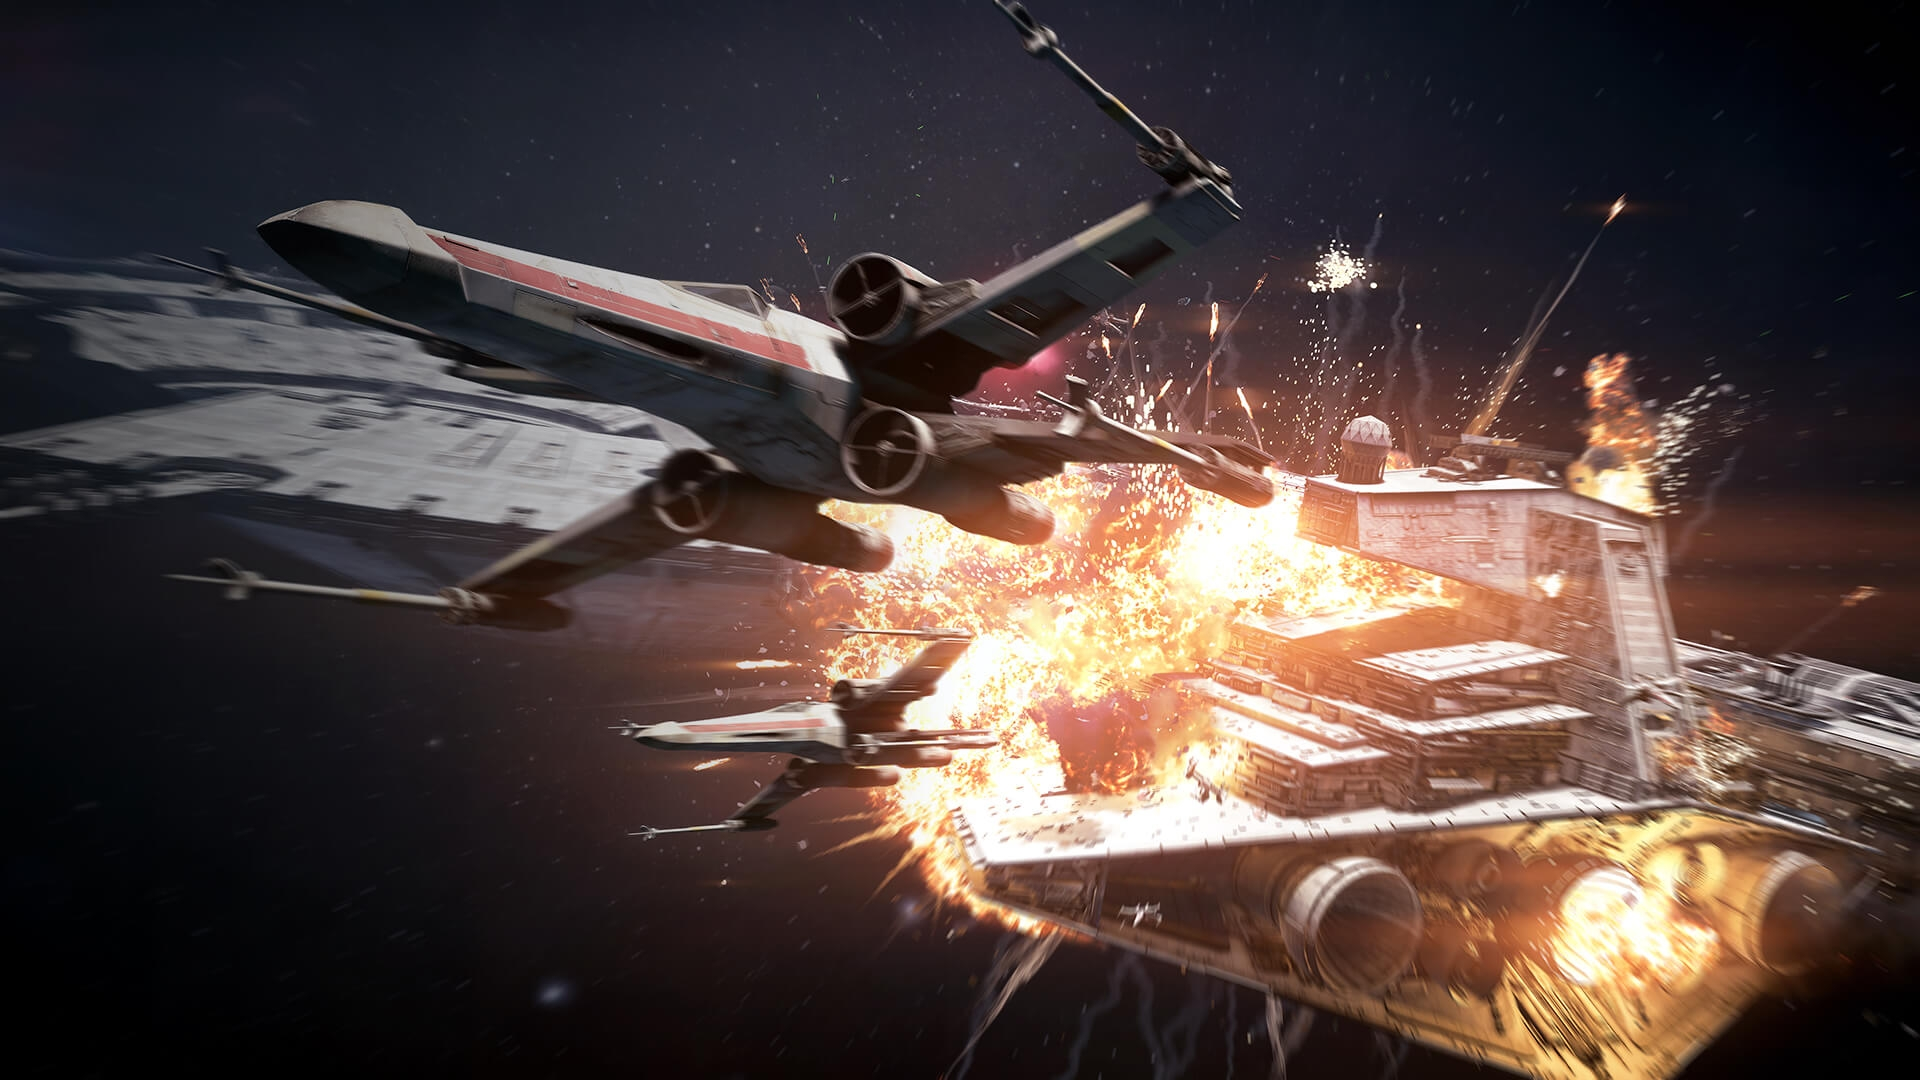 Star Wars: Battlefront 2 open beta – start time, modes, PC specs, challenges and everything else you need to know